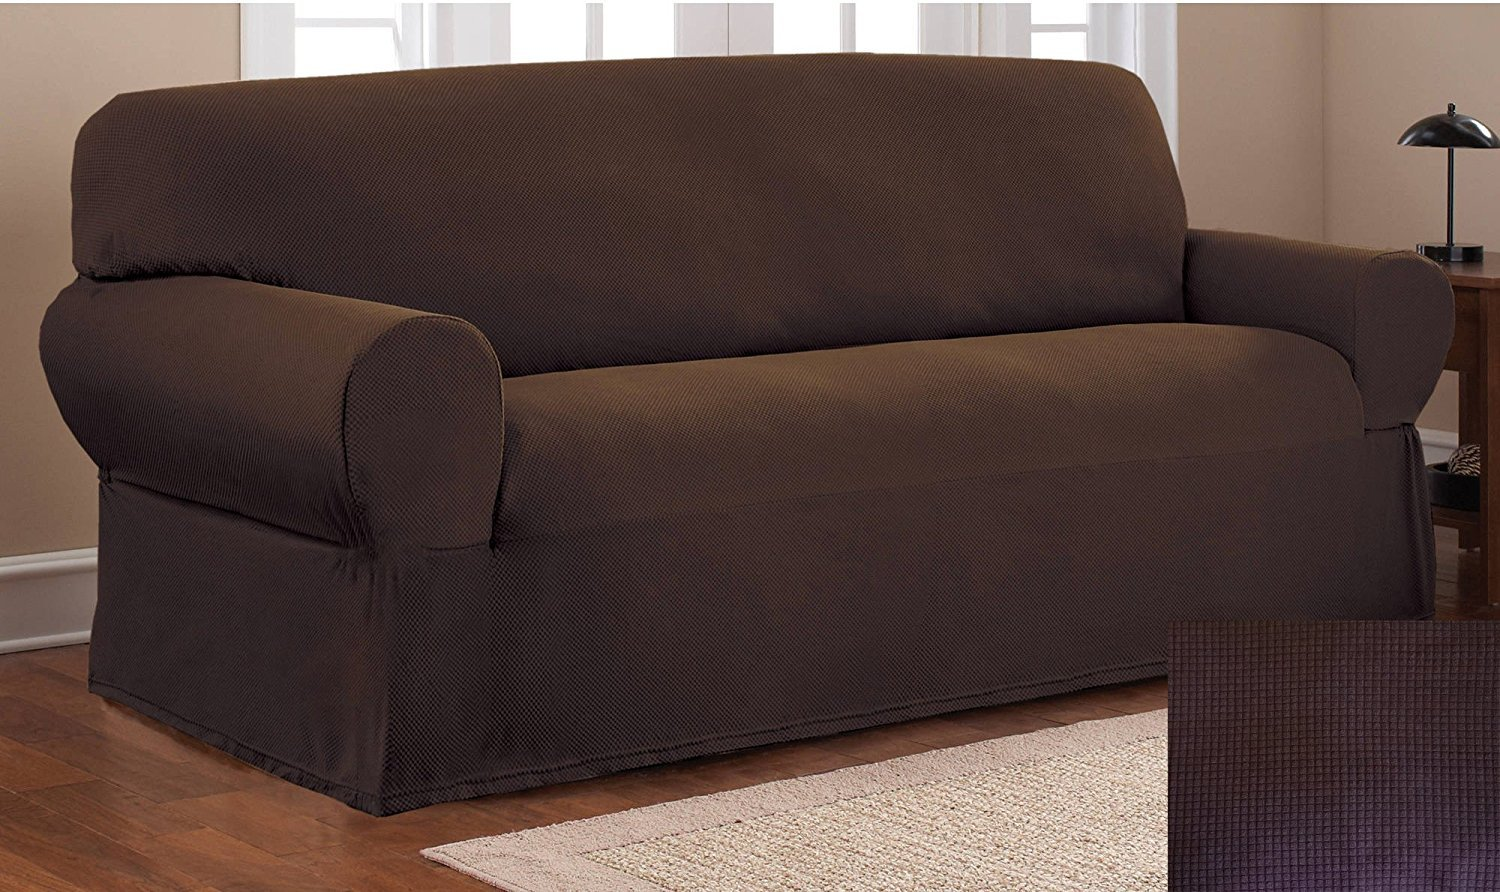 Fancy Collection Sure Fit Stretch Fabric Sofa Slipcover Sofa Cover Solid New #Stella (Coffee/Brown, 1 pc Sofa)